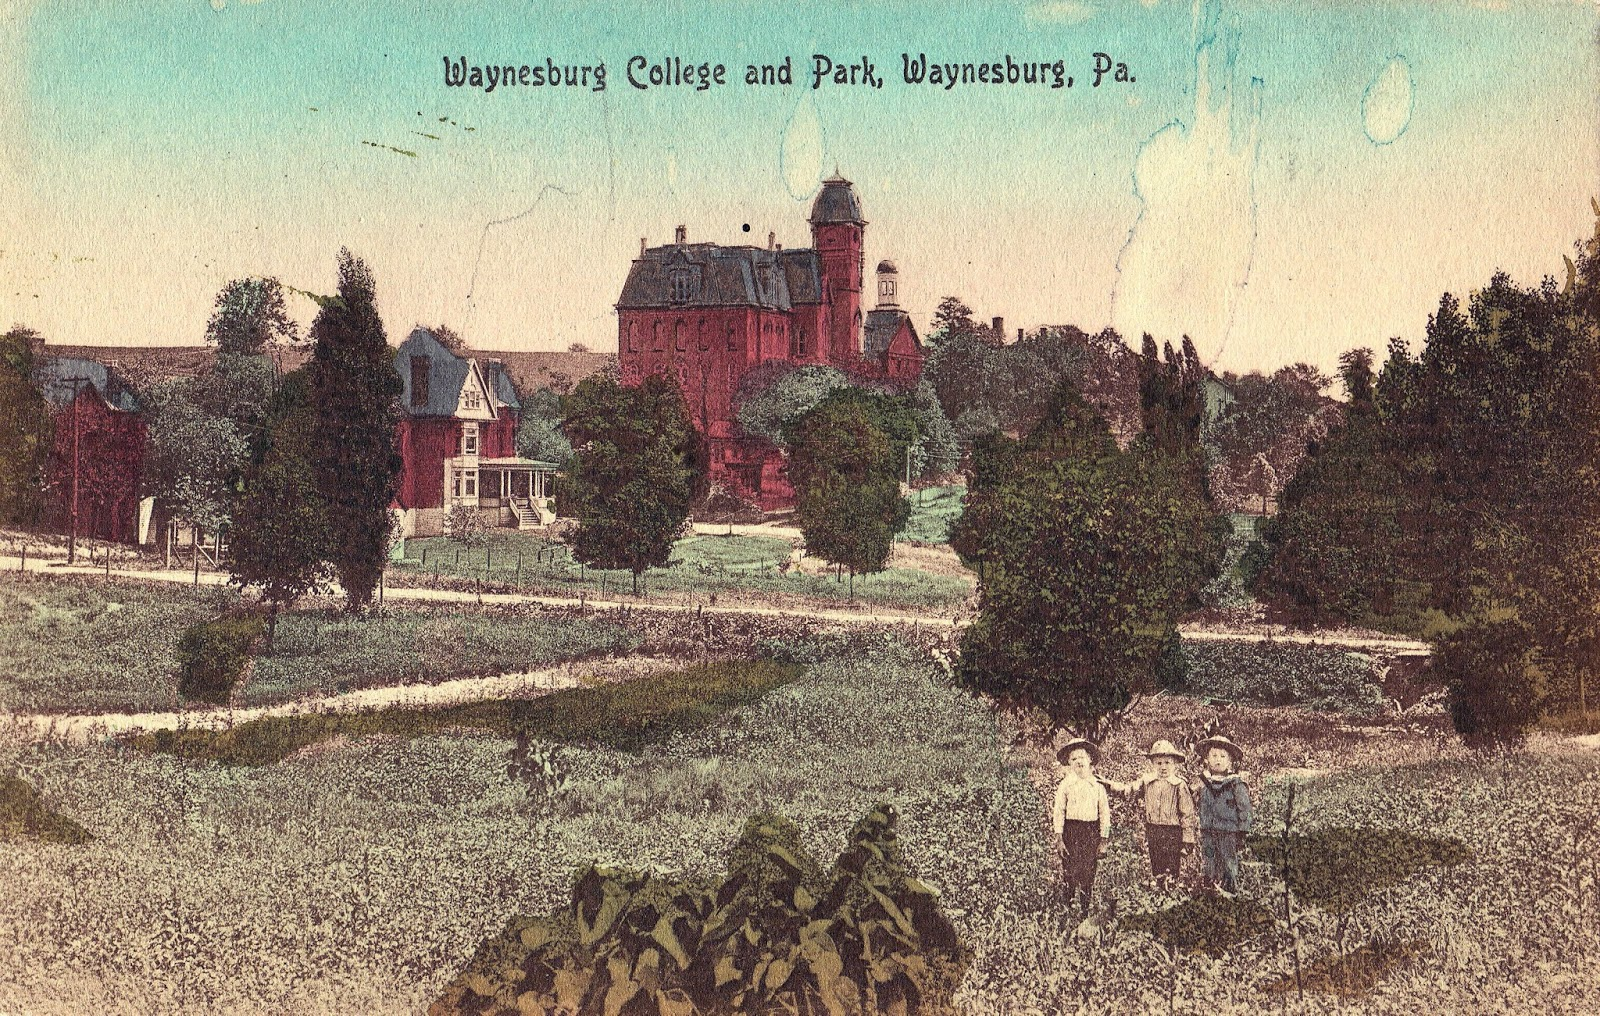 An early 20th century postcard with Miller Hall included.